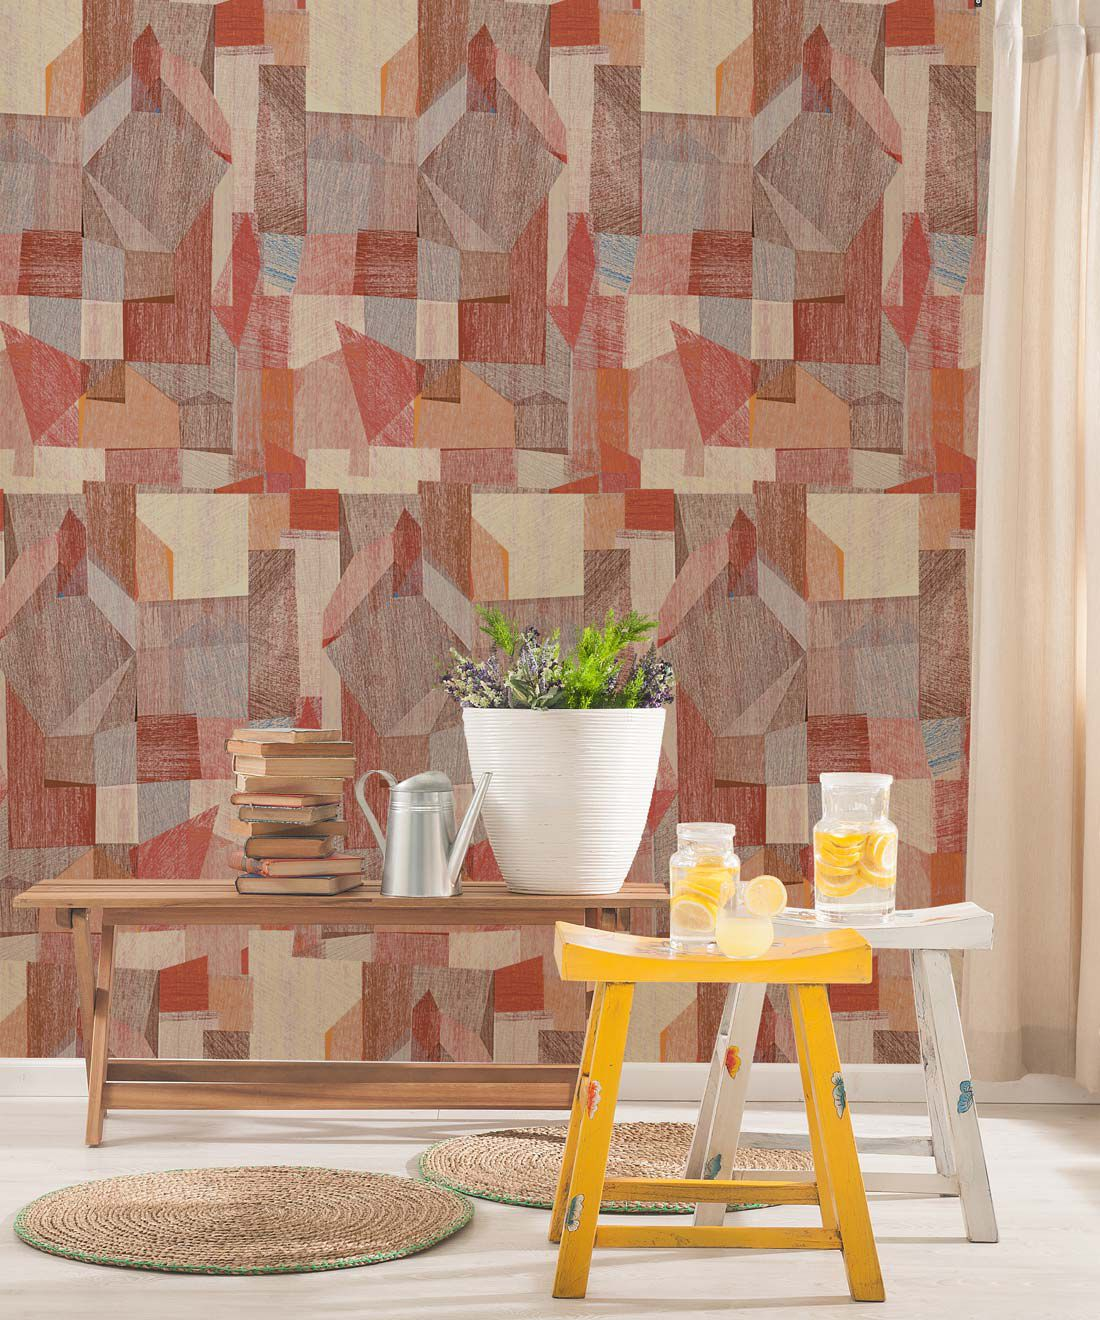 Chimera Wallpaper by Simcox • Color Rust • Abstract Wallpaper • Geometric Wallpaper • insitu